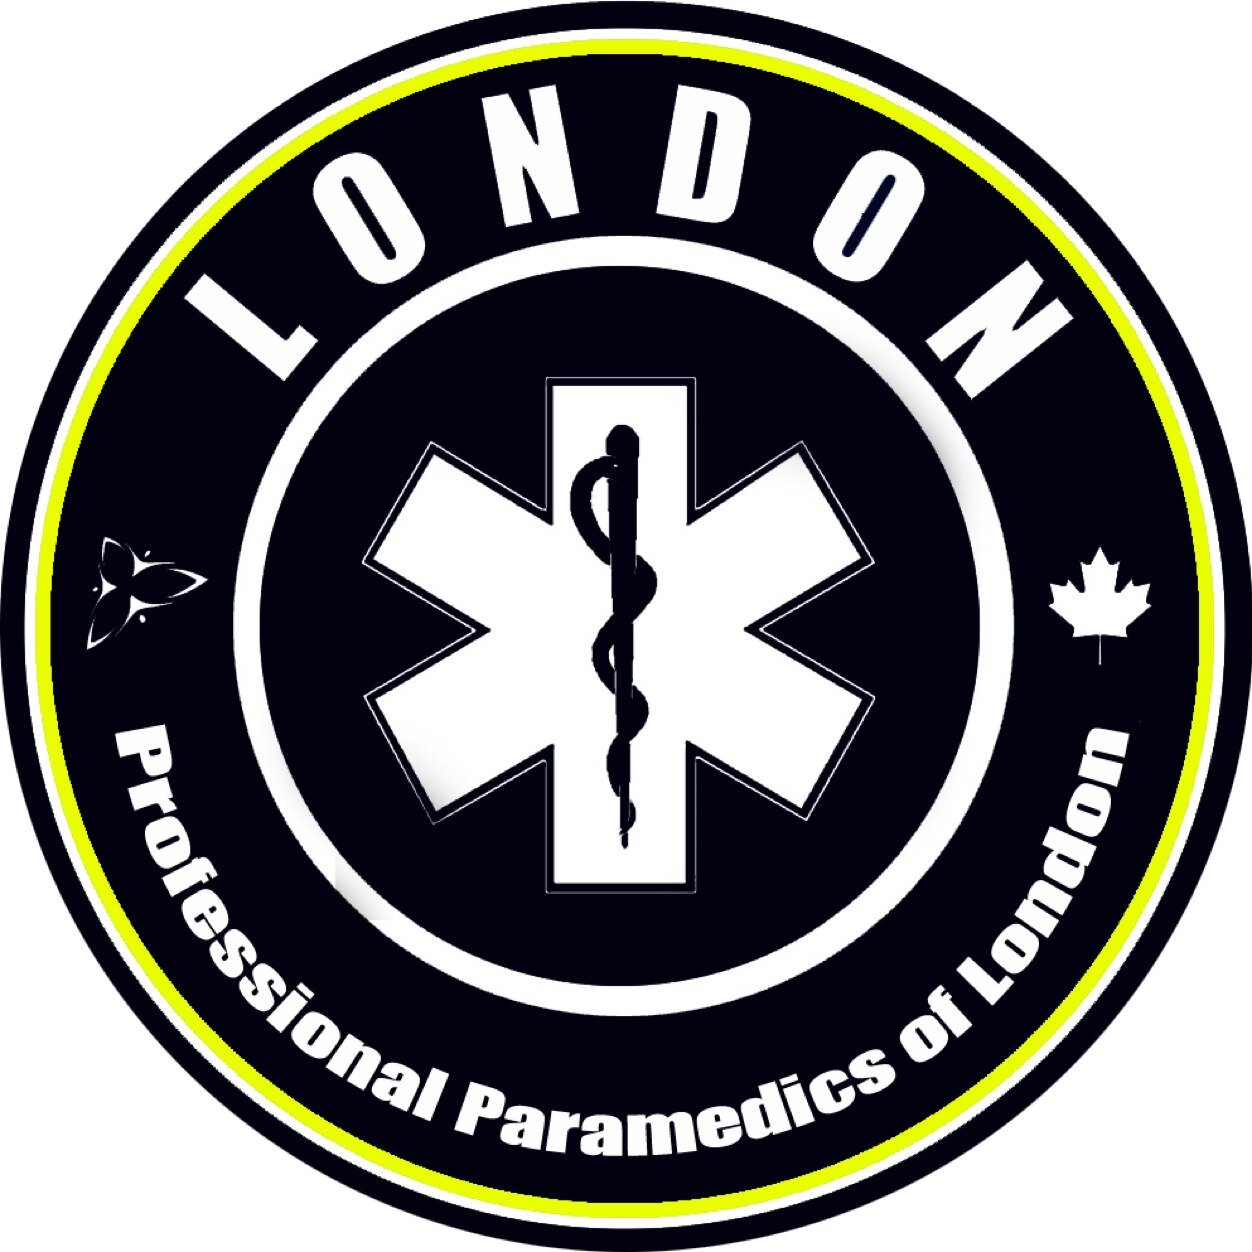 London paramedics on twitter middlesex london ems paramedics at london paramedics biocorpaavc Images